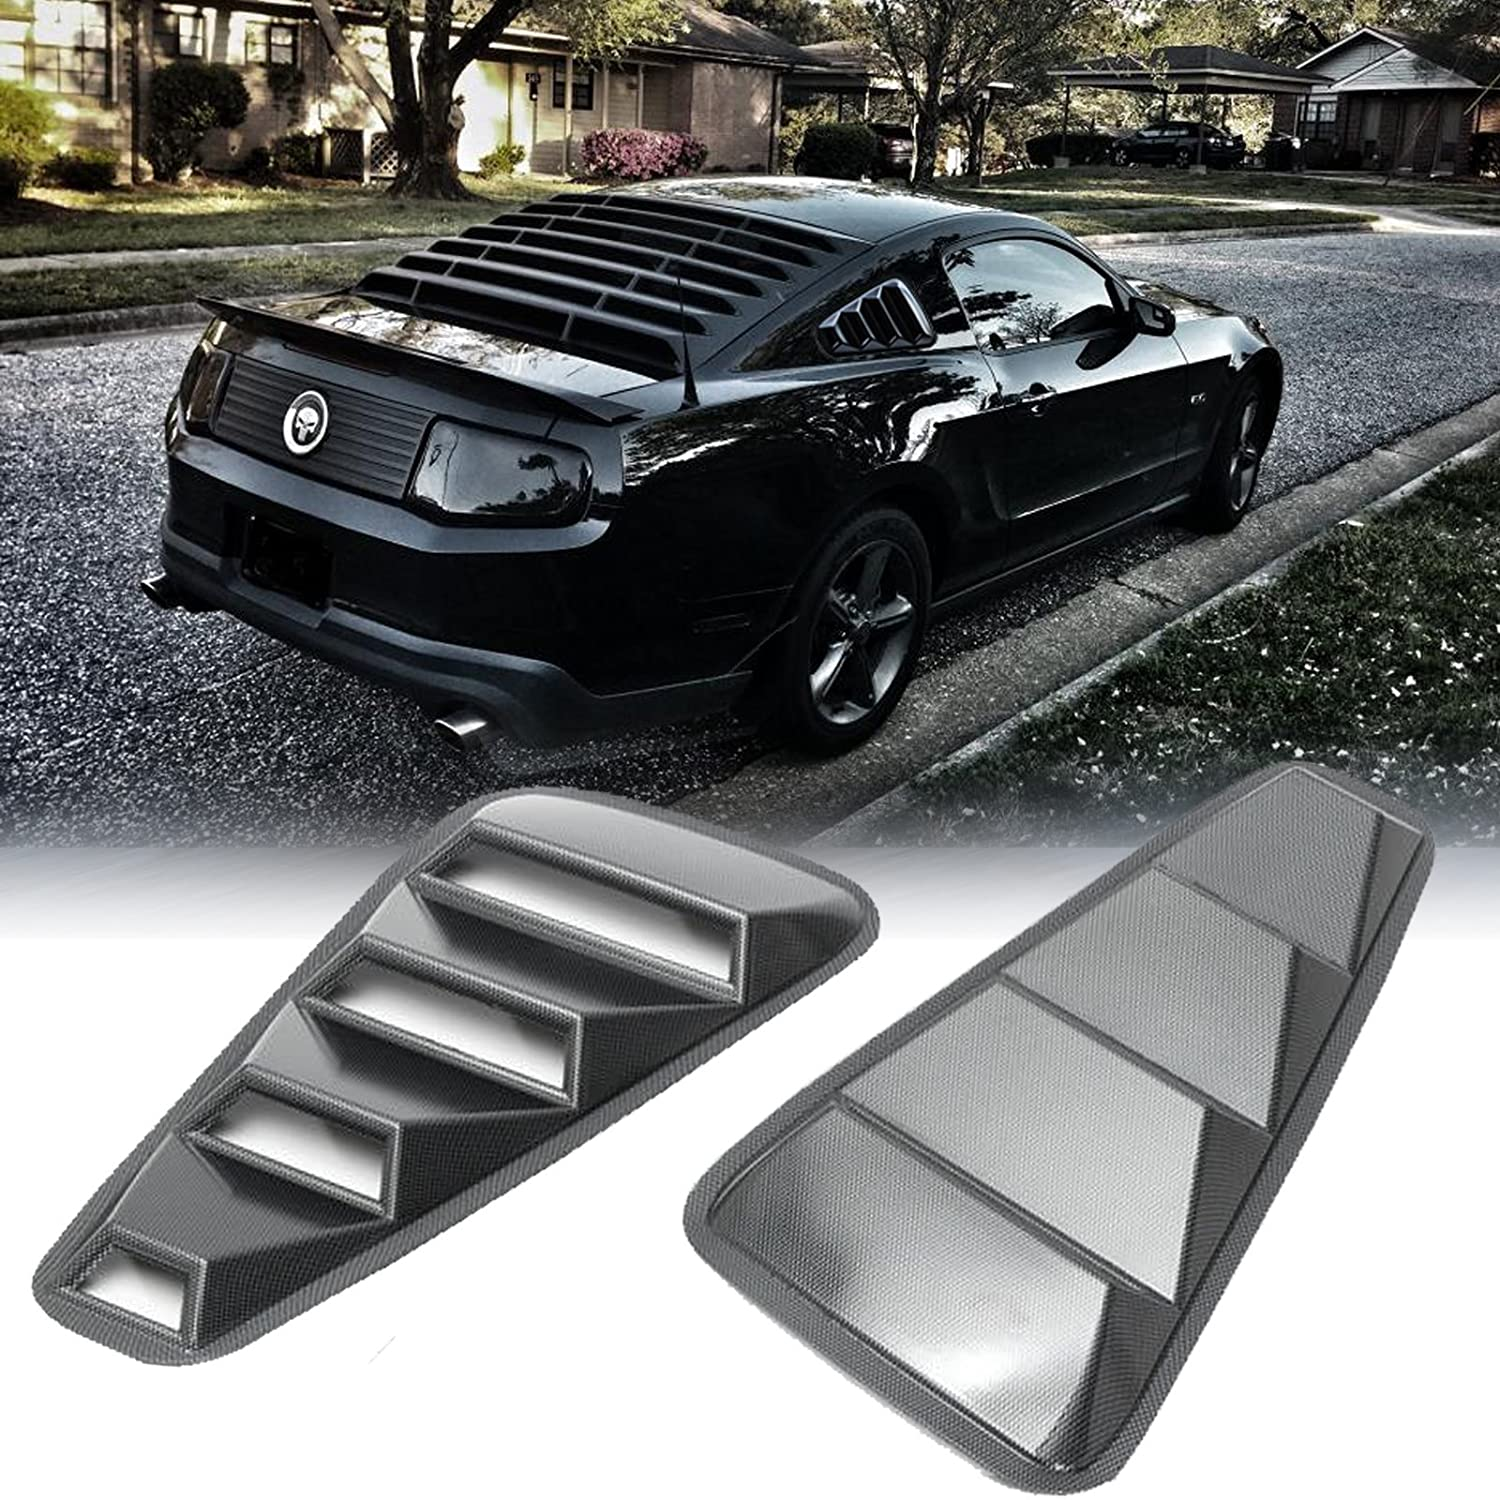 Xotic Tech 2pcs Carbon Fiber Pattern Vents Style Window Quarter Scoop Louver Cover for Ford Mustang 2005-2014